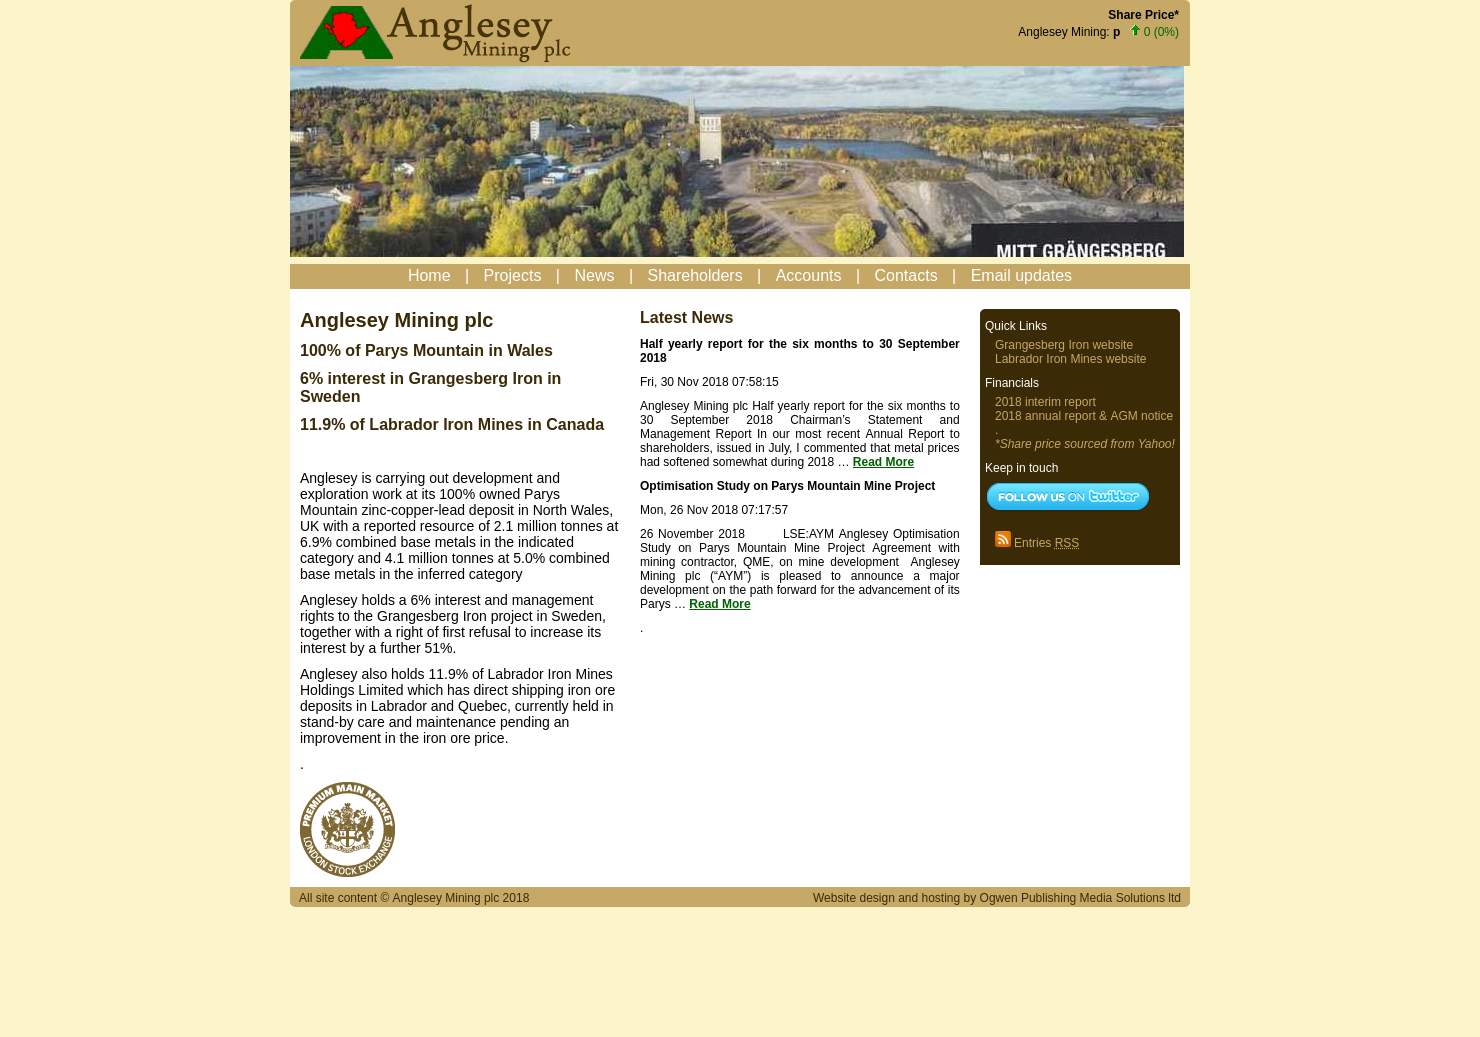 Anglesey Mining Home Page